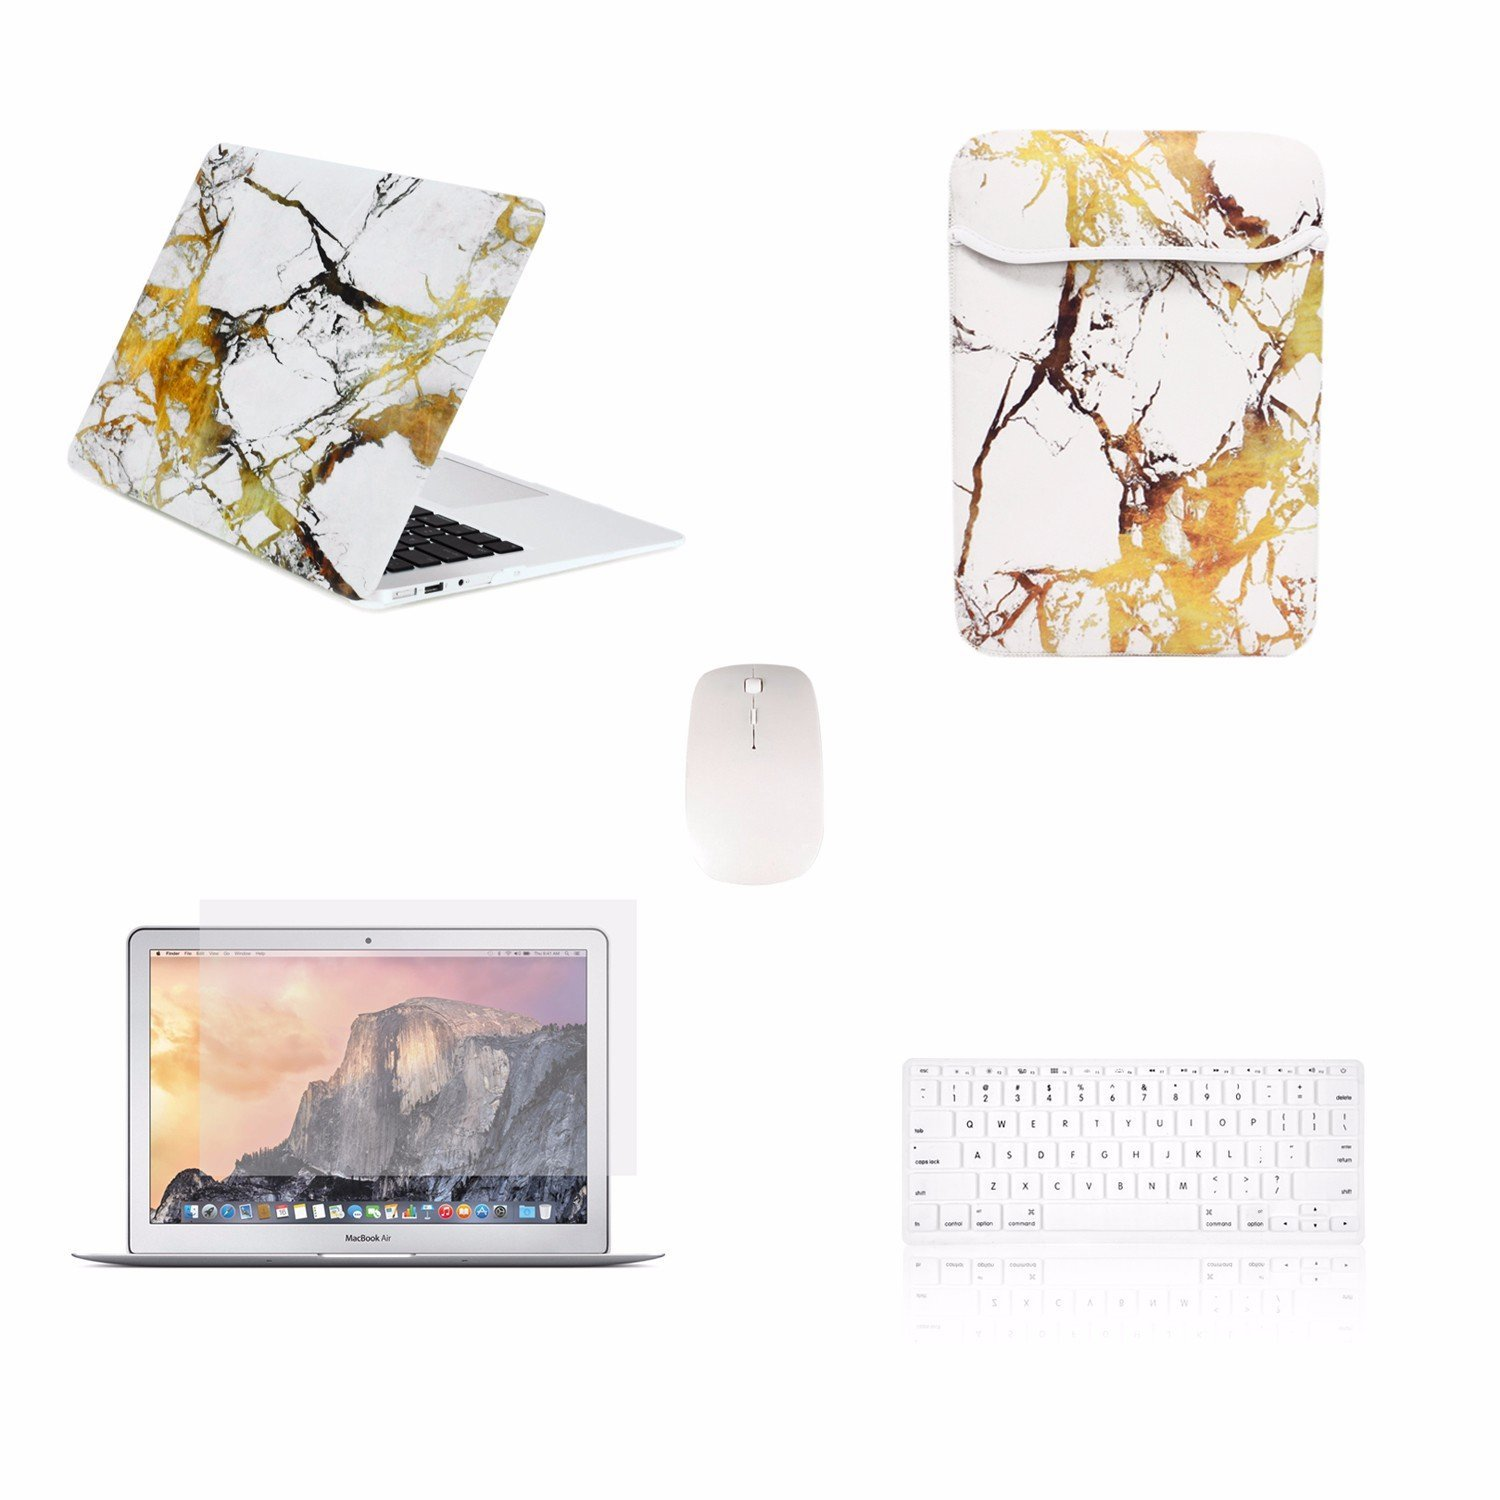 """TOP CASE 5 in 1 Bundle Deal - Air 11-Inch Marble Pattern Rubberized Hard Case, Keyboard Cover, Screen Protector, Sleeve Bag and Mouse for MacBook Air 11"""" A1370 & A1465 - Marble White/Gold"""